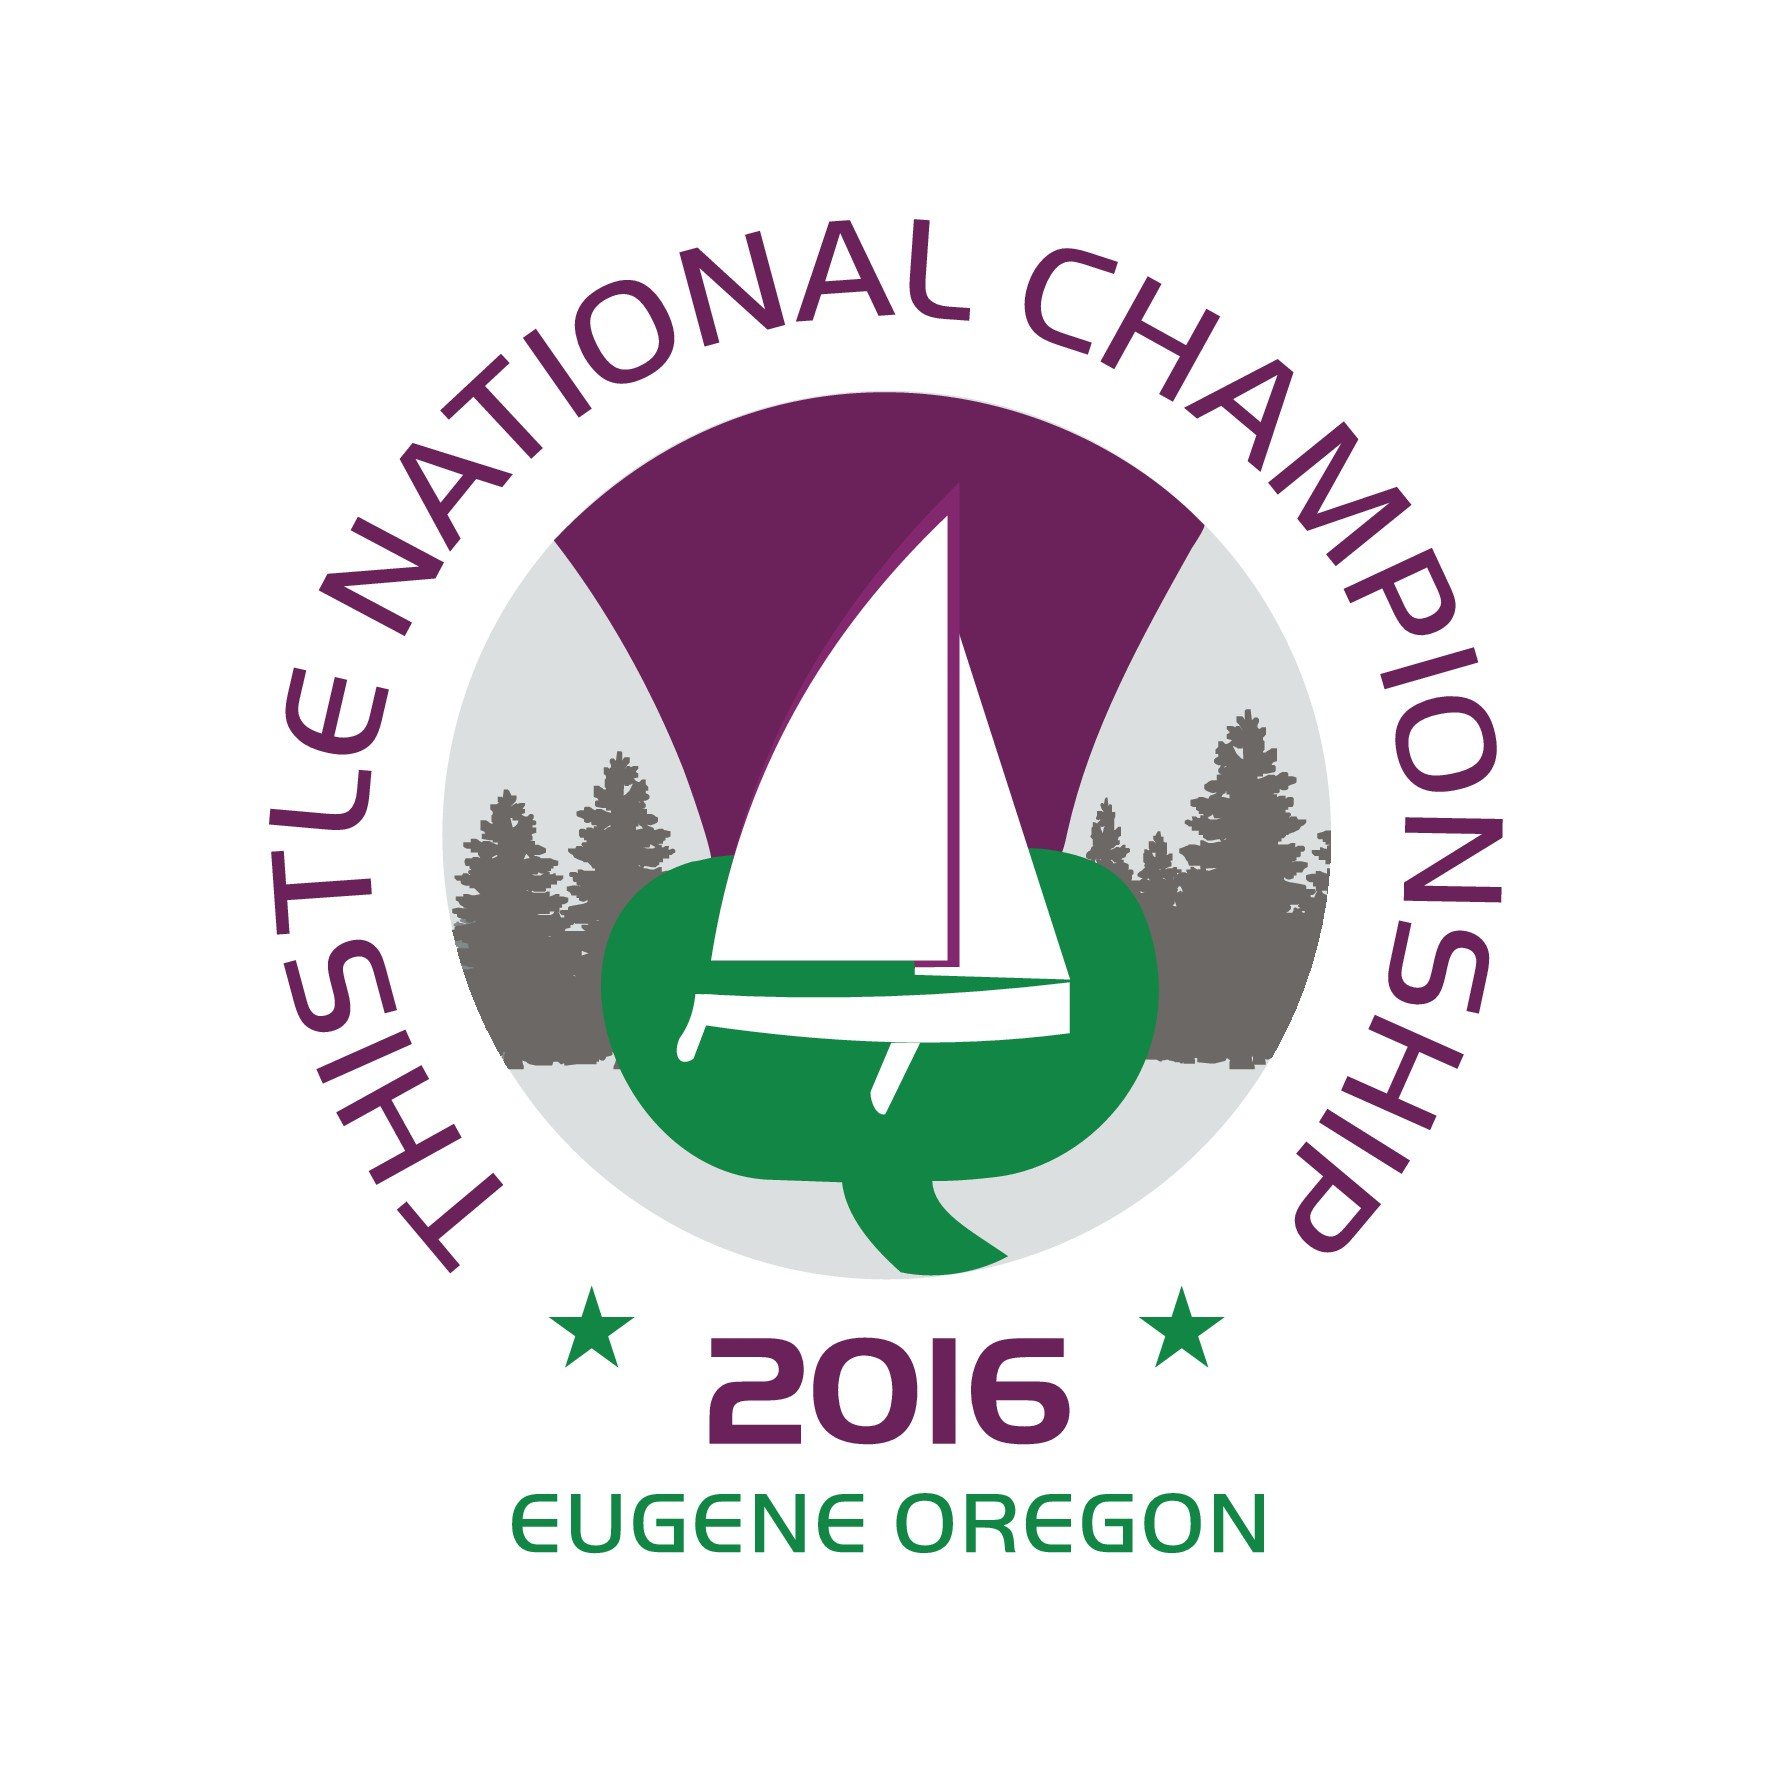 Sailing National Championship for the Thistle Class of boat, 2016